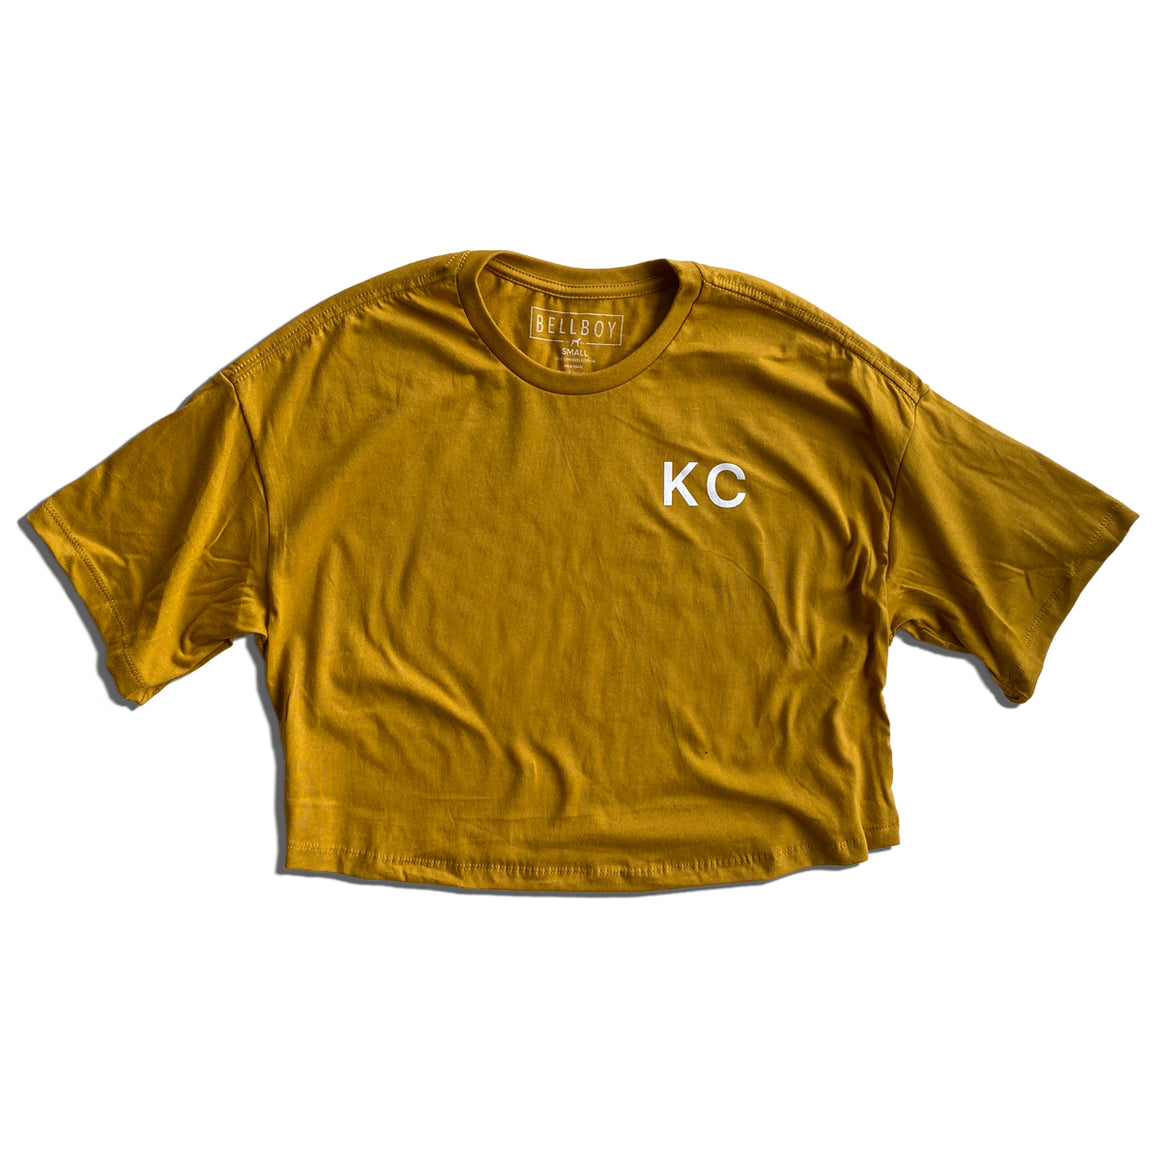 BELLBOY | KC CROP TOP T-SHIRT - MUSTARD